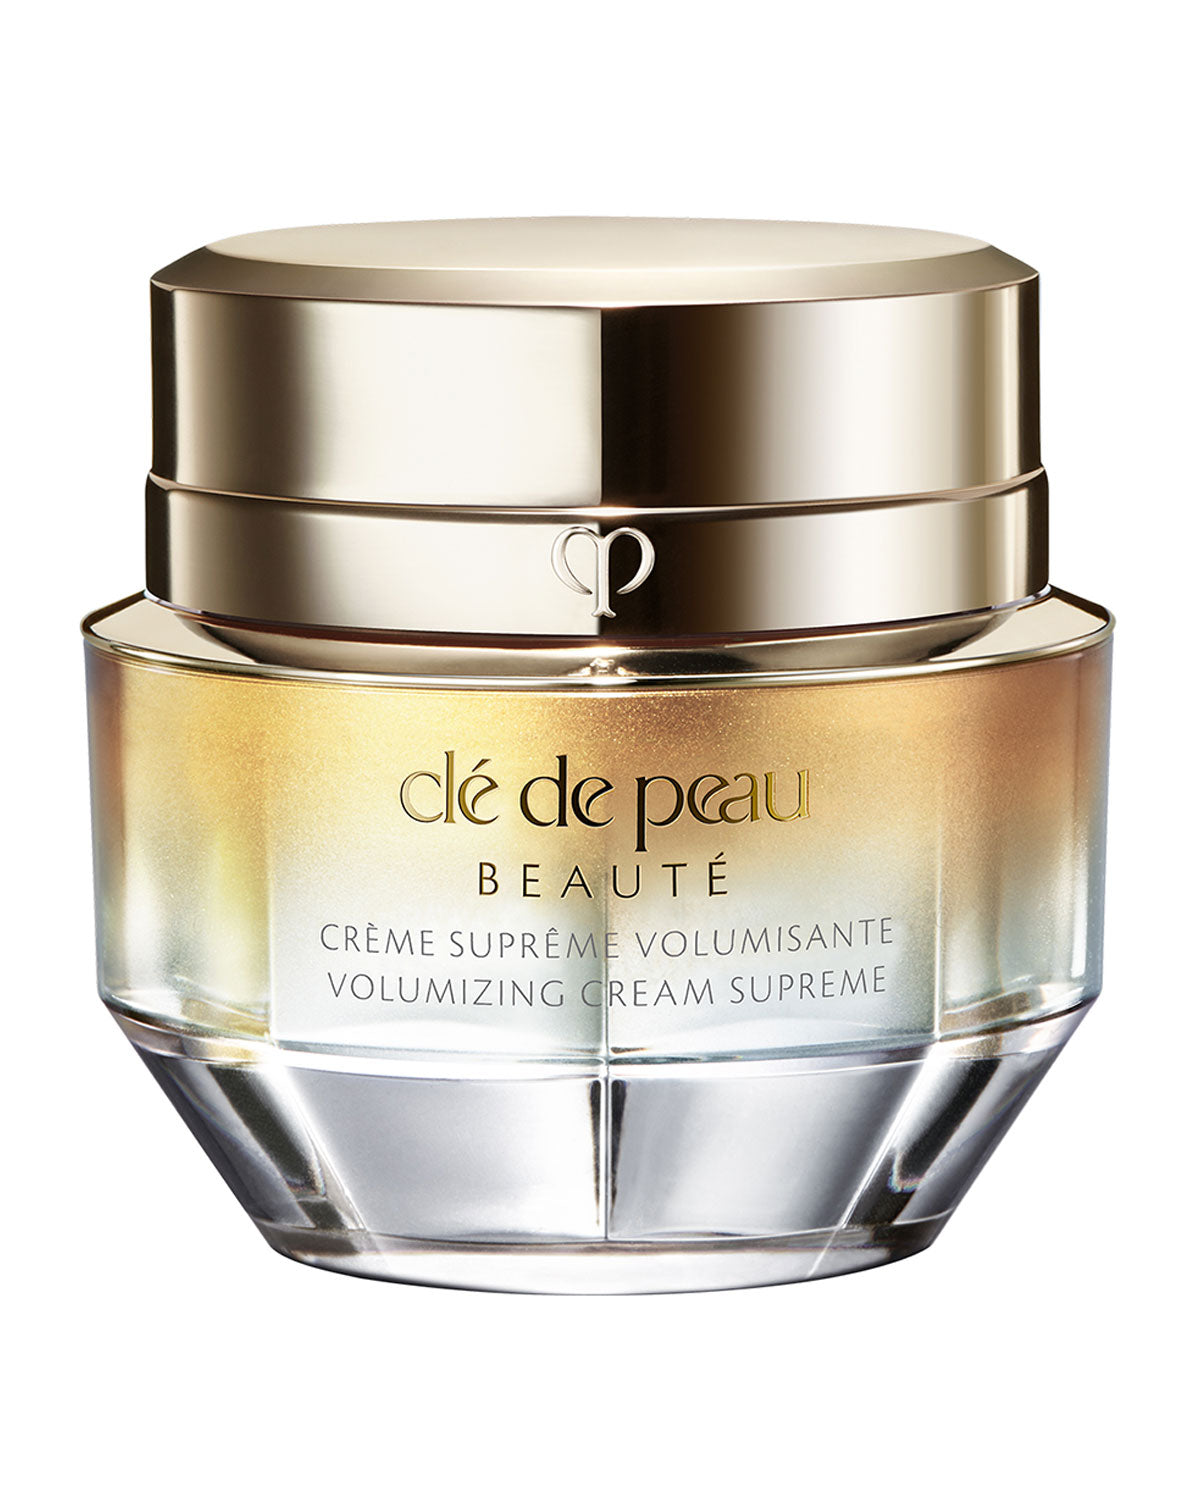 Cle de Peau Face Creams - Paul Labrecque